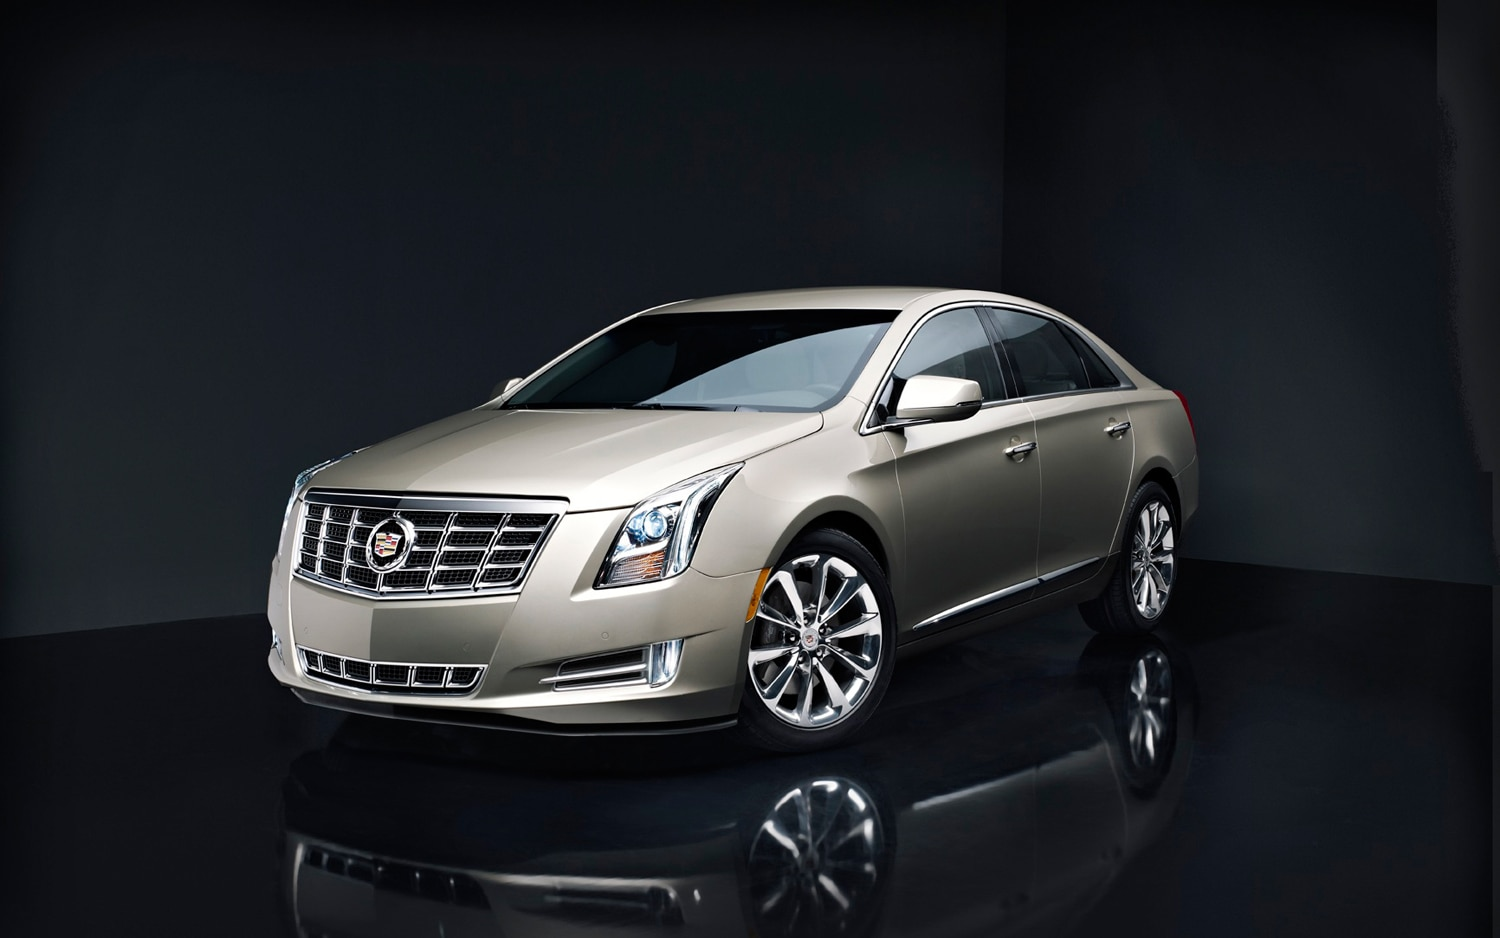 xts cadillac gold turbo hp gets equipment starts source automobilemag quarter three front